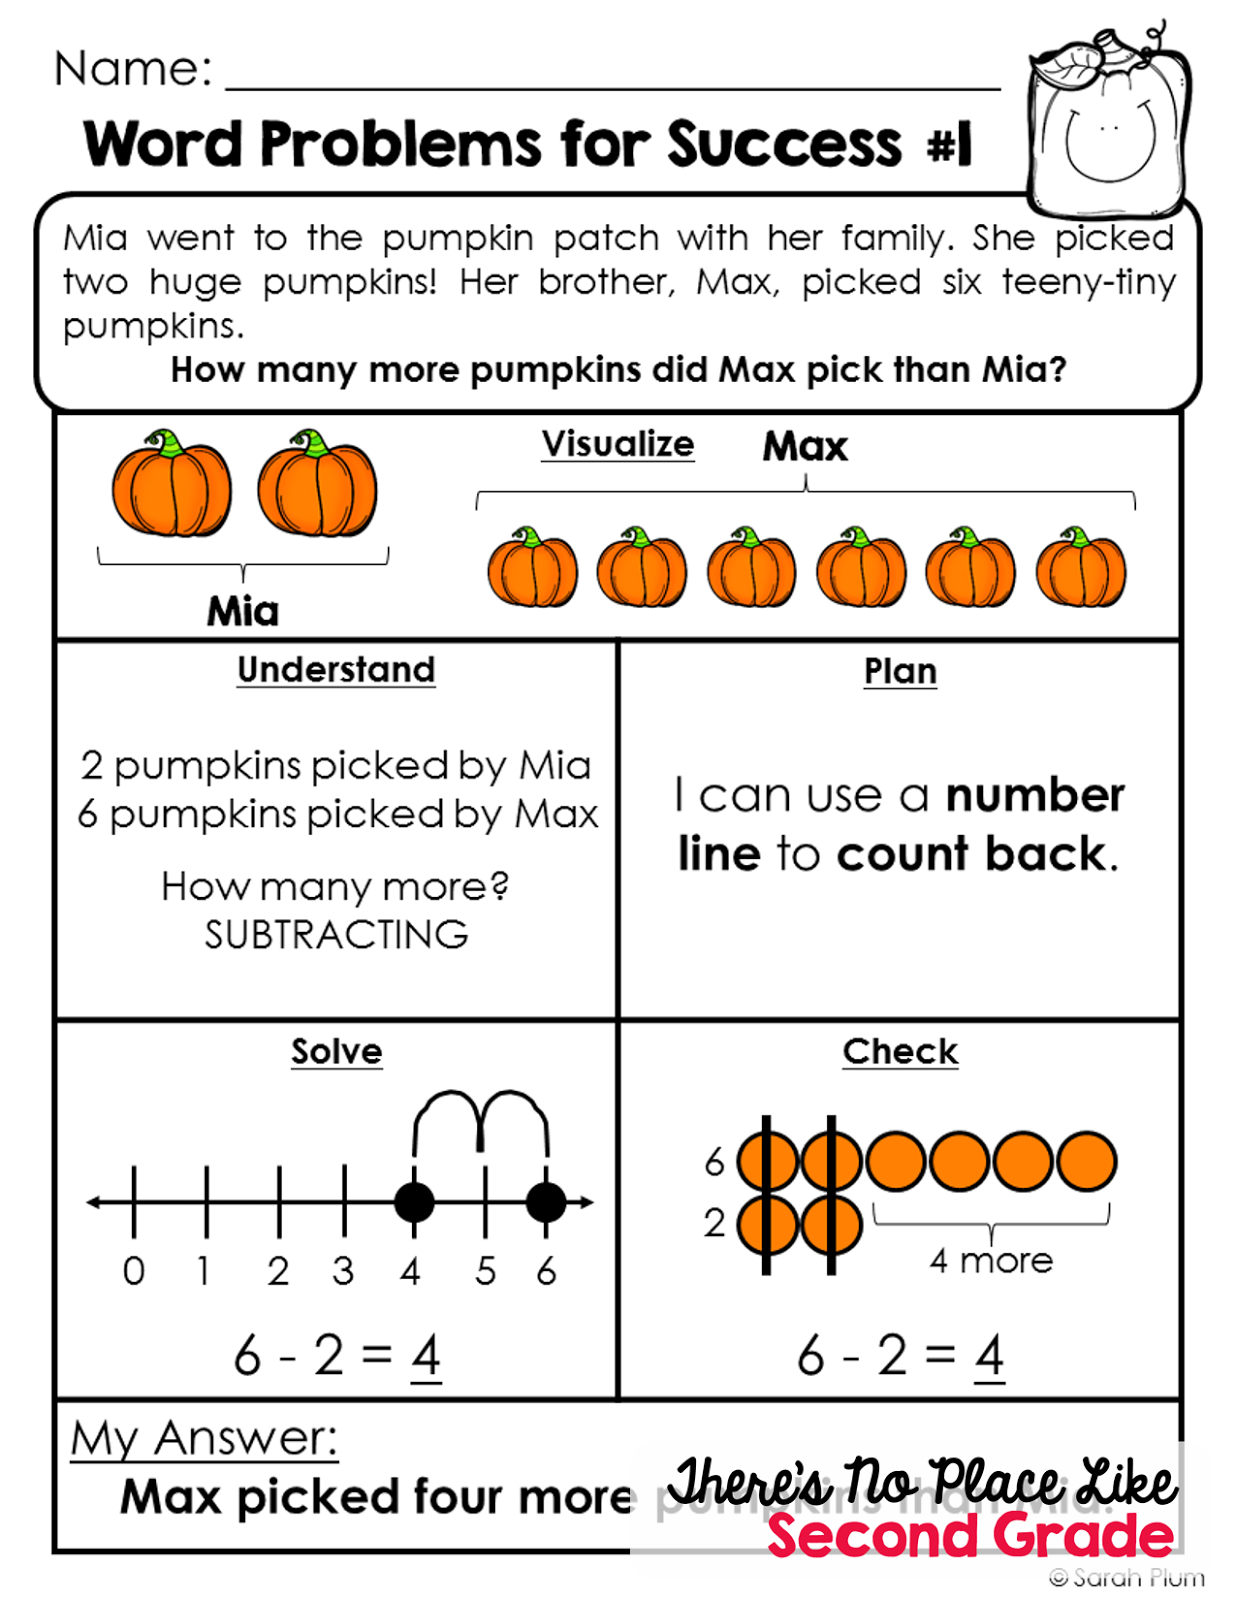 Worksheet Word Problems 2nd Grade two step multiplication word problems for 3rd grade viking 2nd 2 worksheets organized